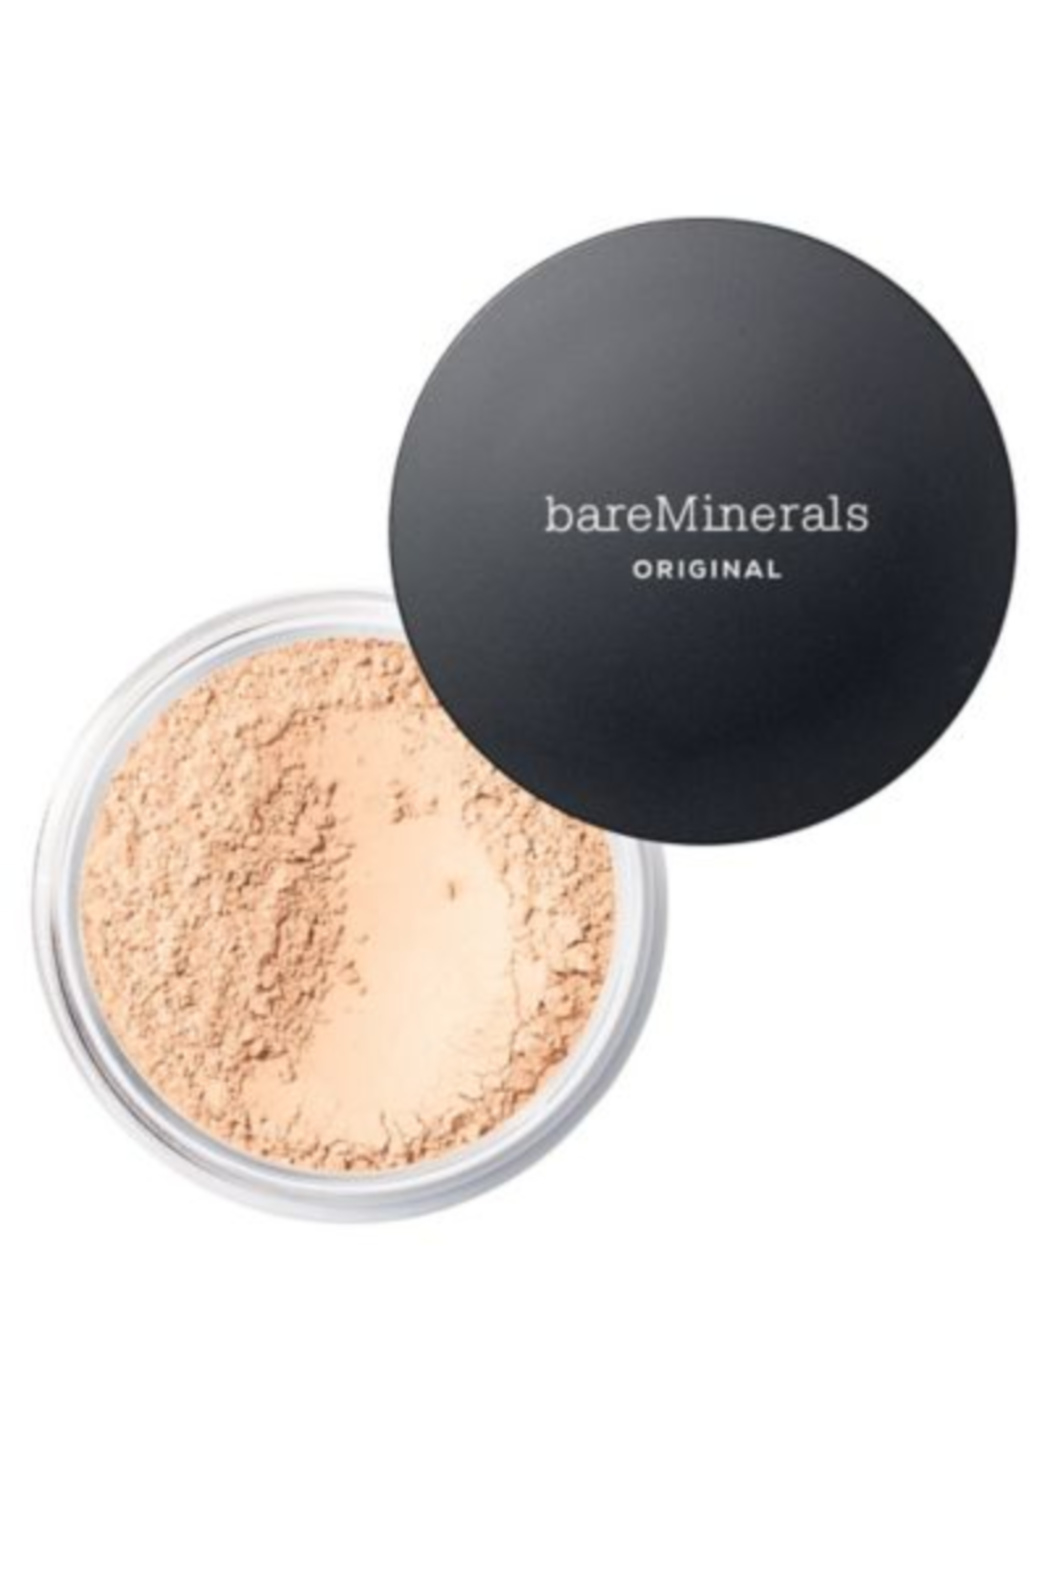 bareMinerals ORIGINAL LOOSE POWDER FOUNDATION SPF 15 - Main Image